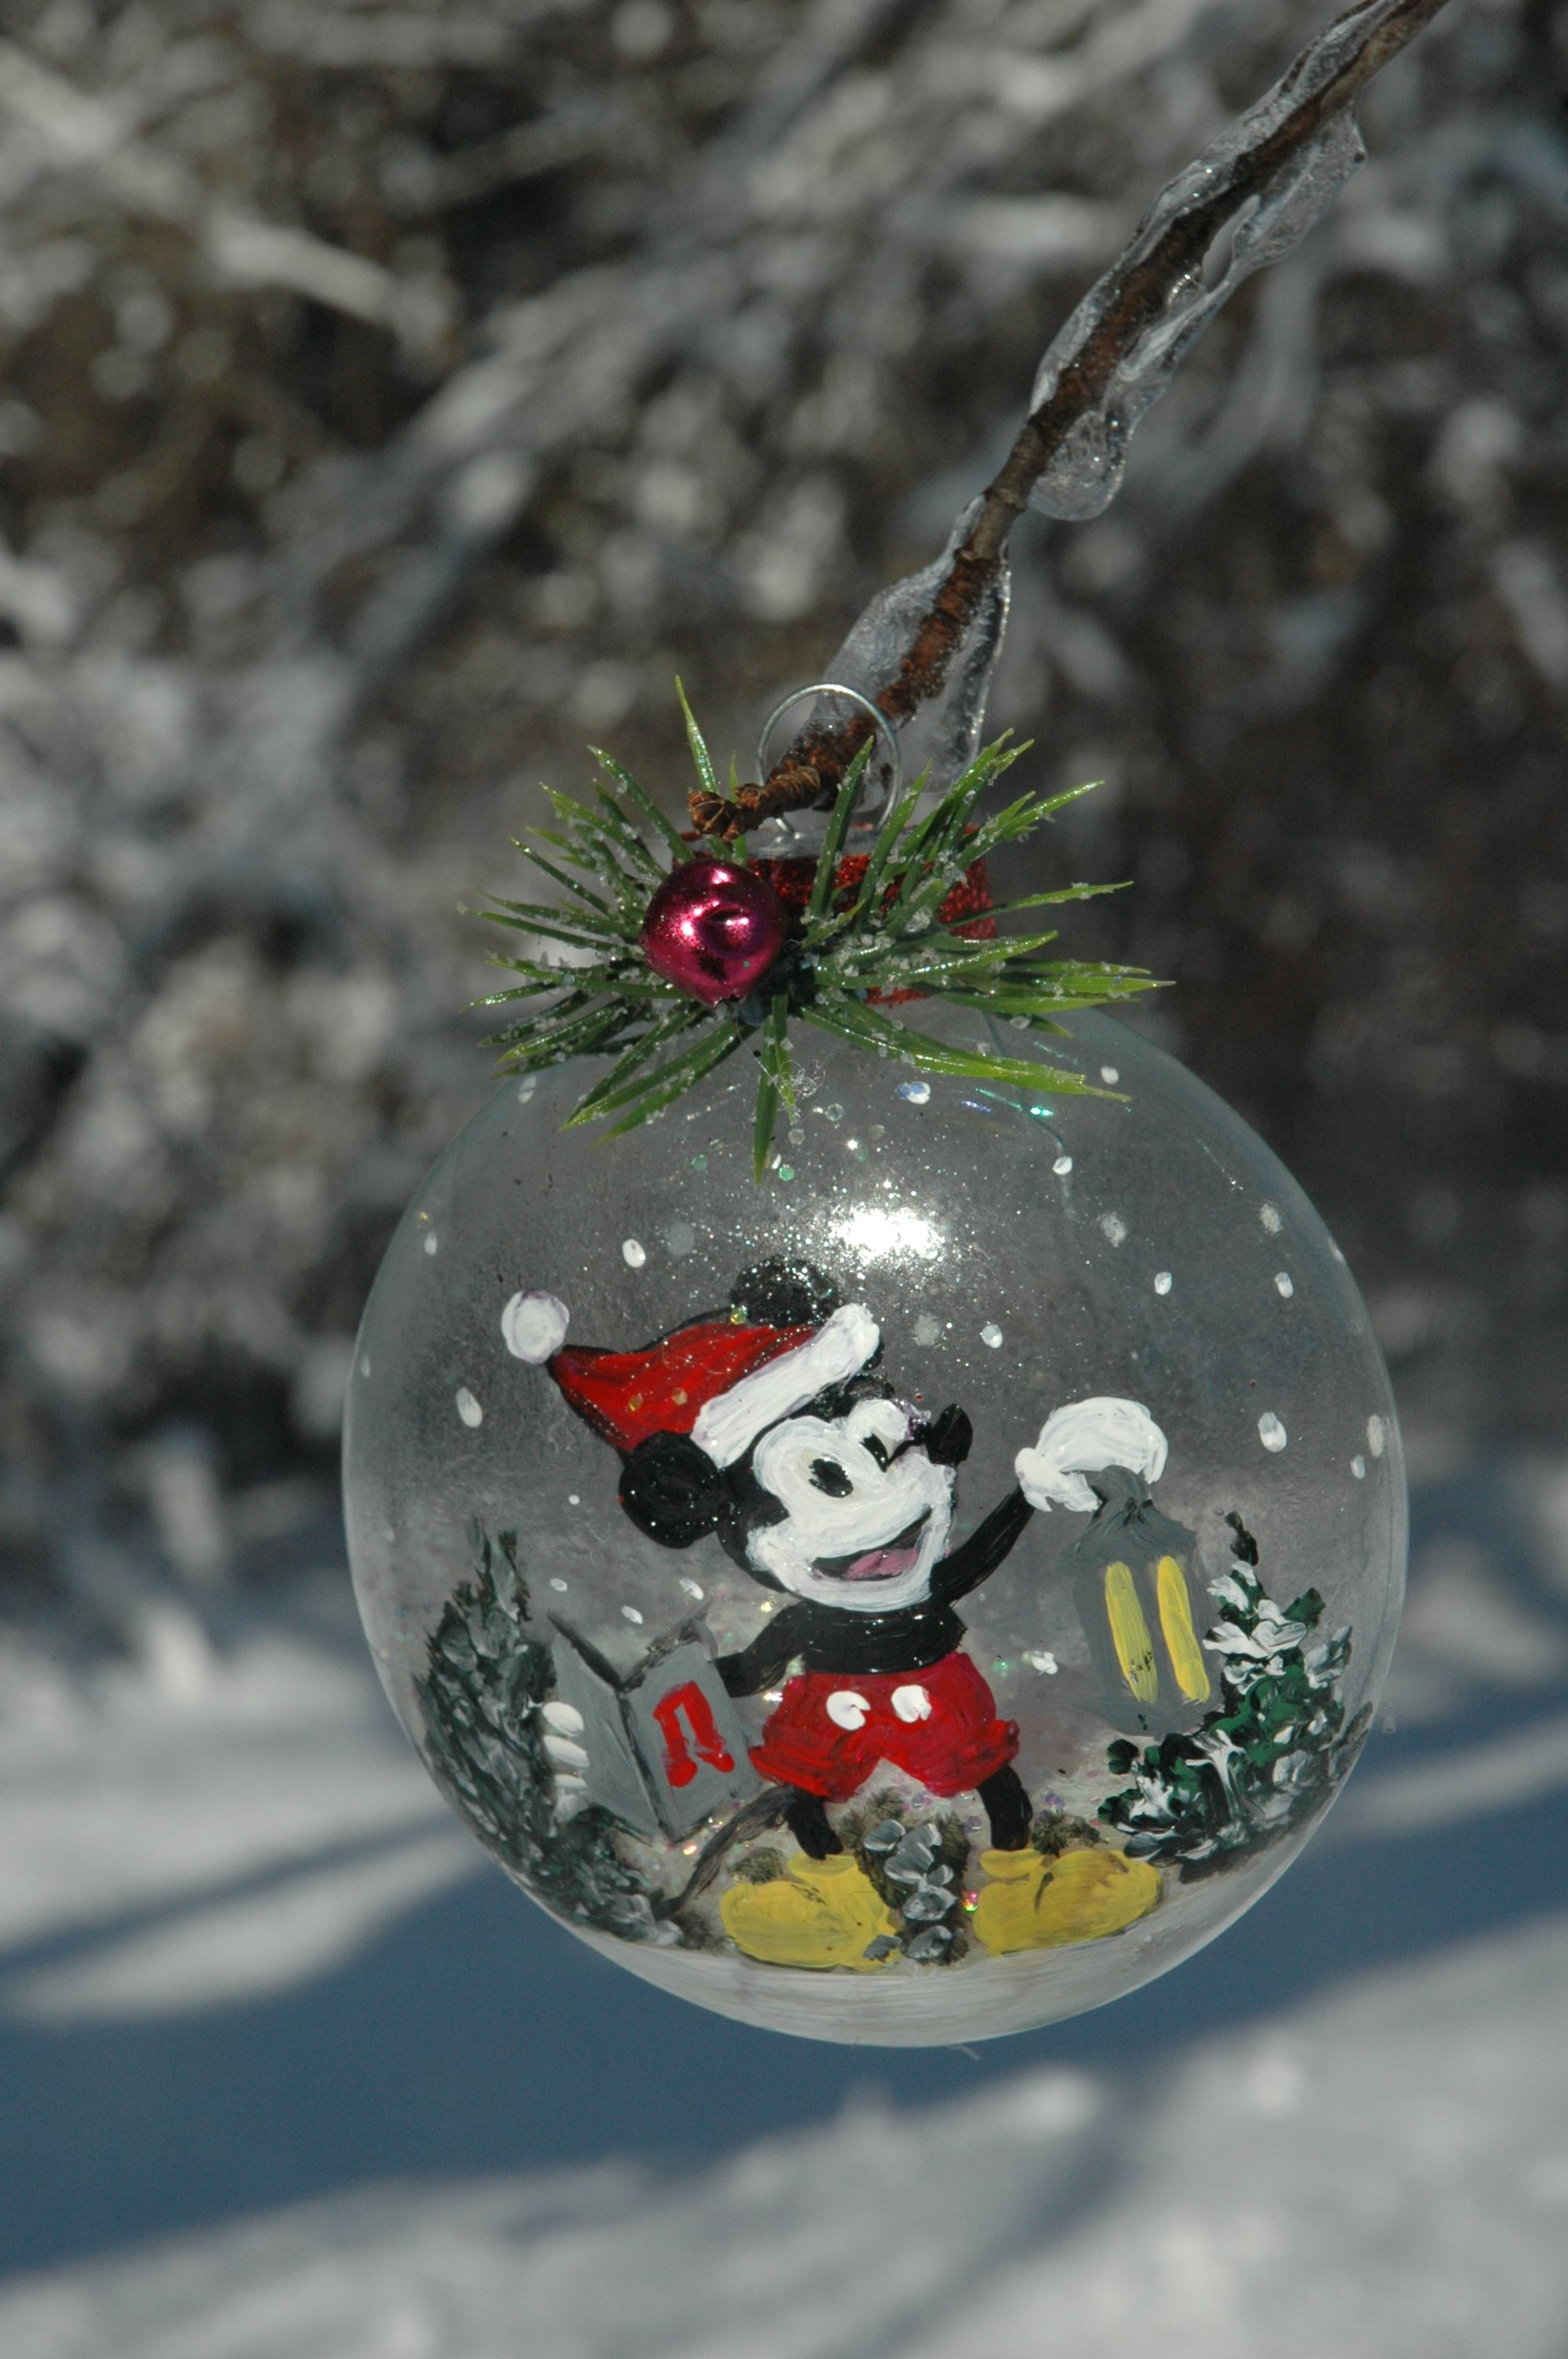 Hand painted ornament I did this week with vintage Mickey